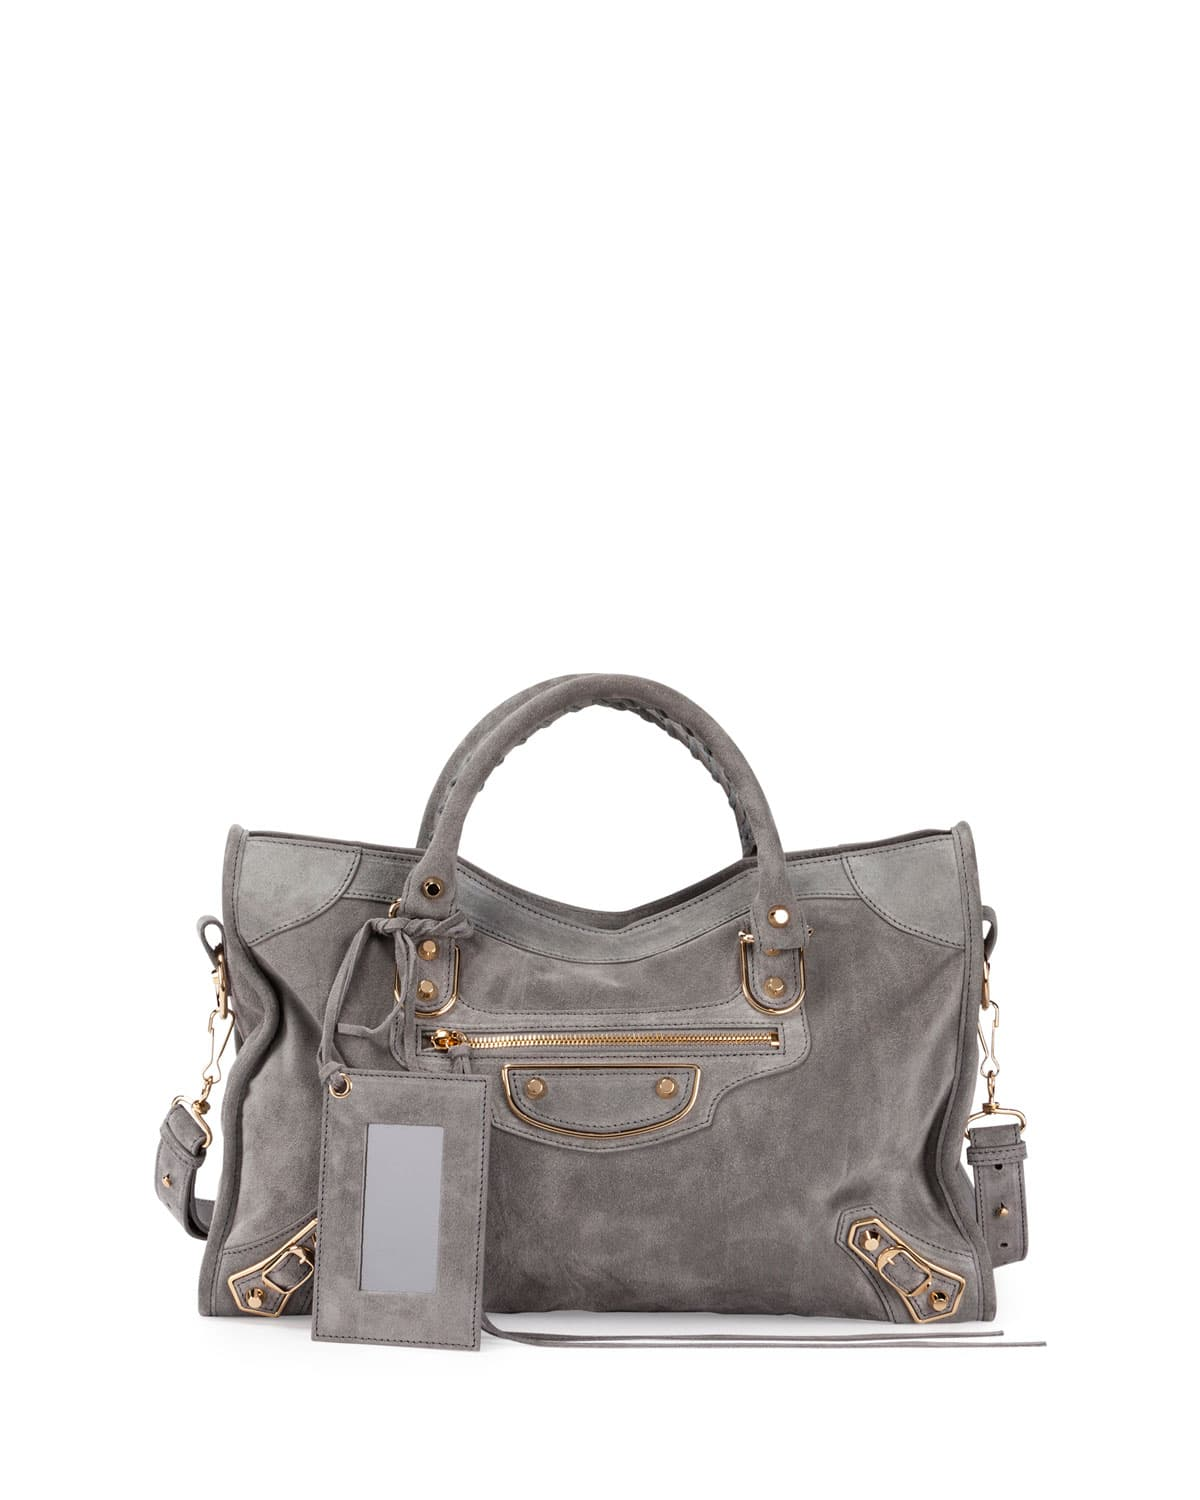 Balenciaga Metallic Edge City Satchel Bag Ec1VBG7